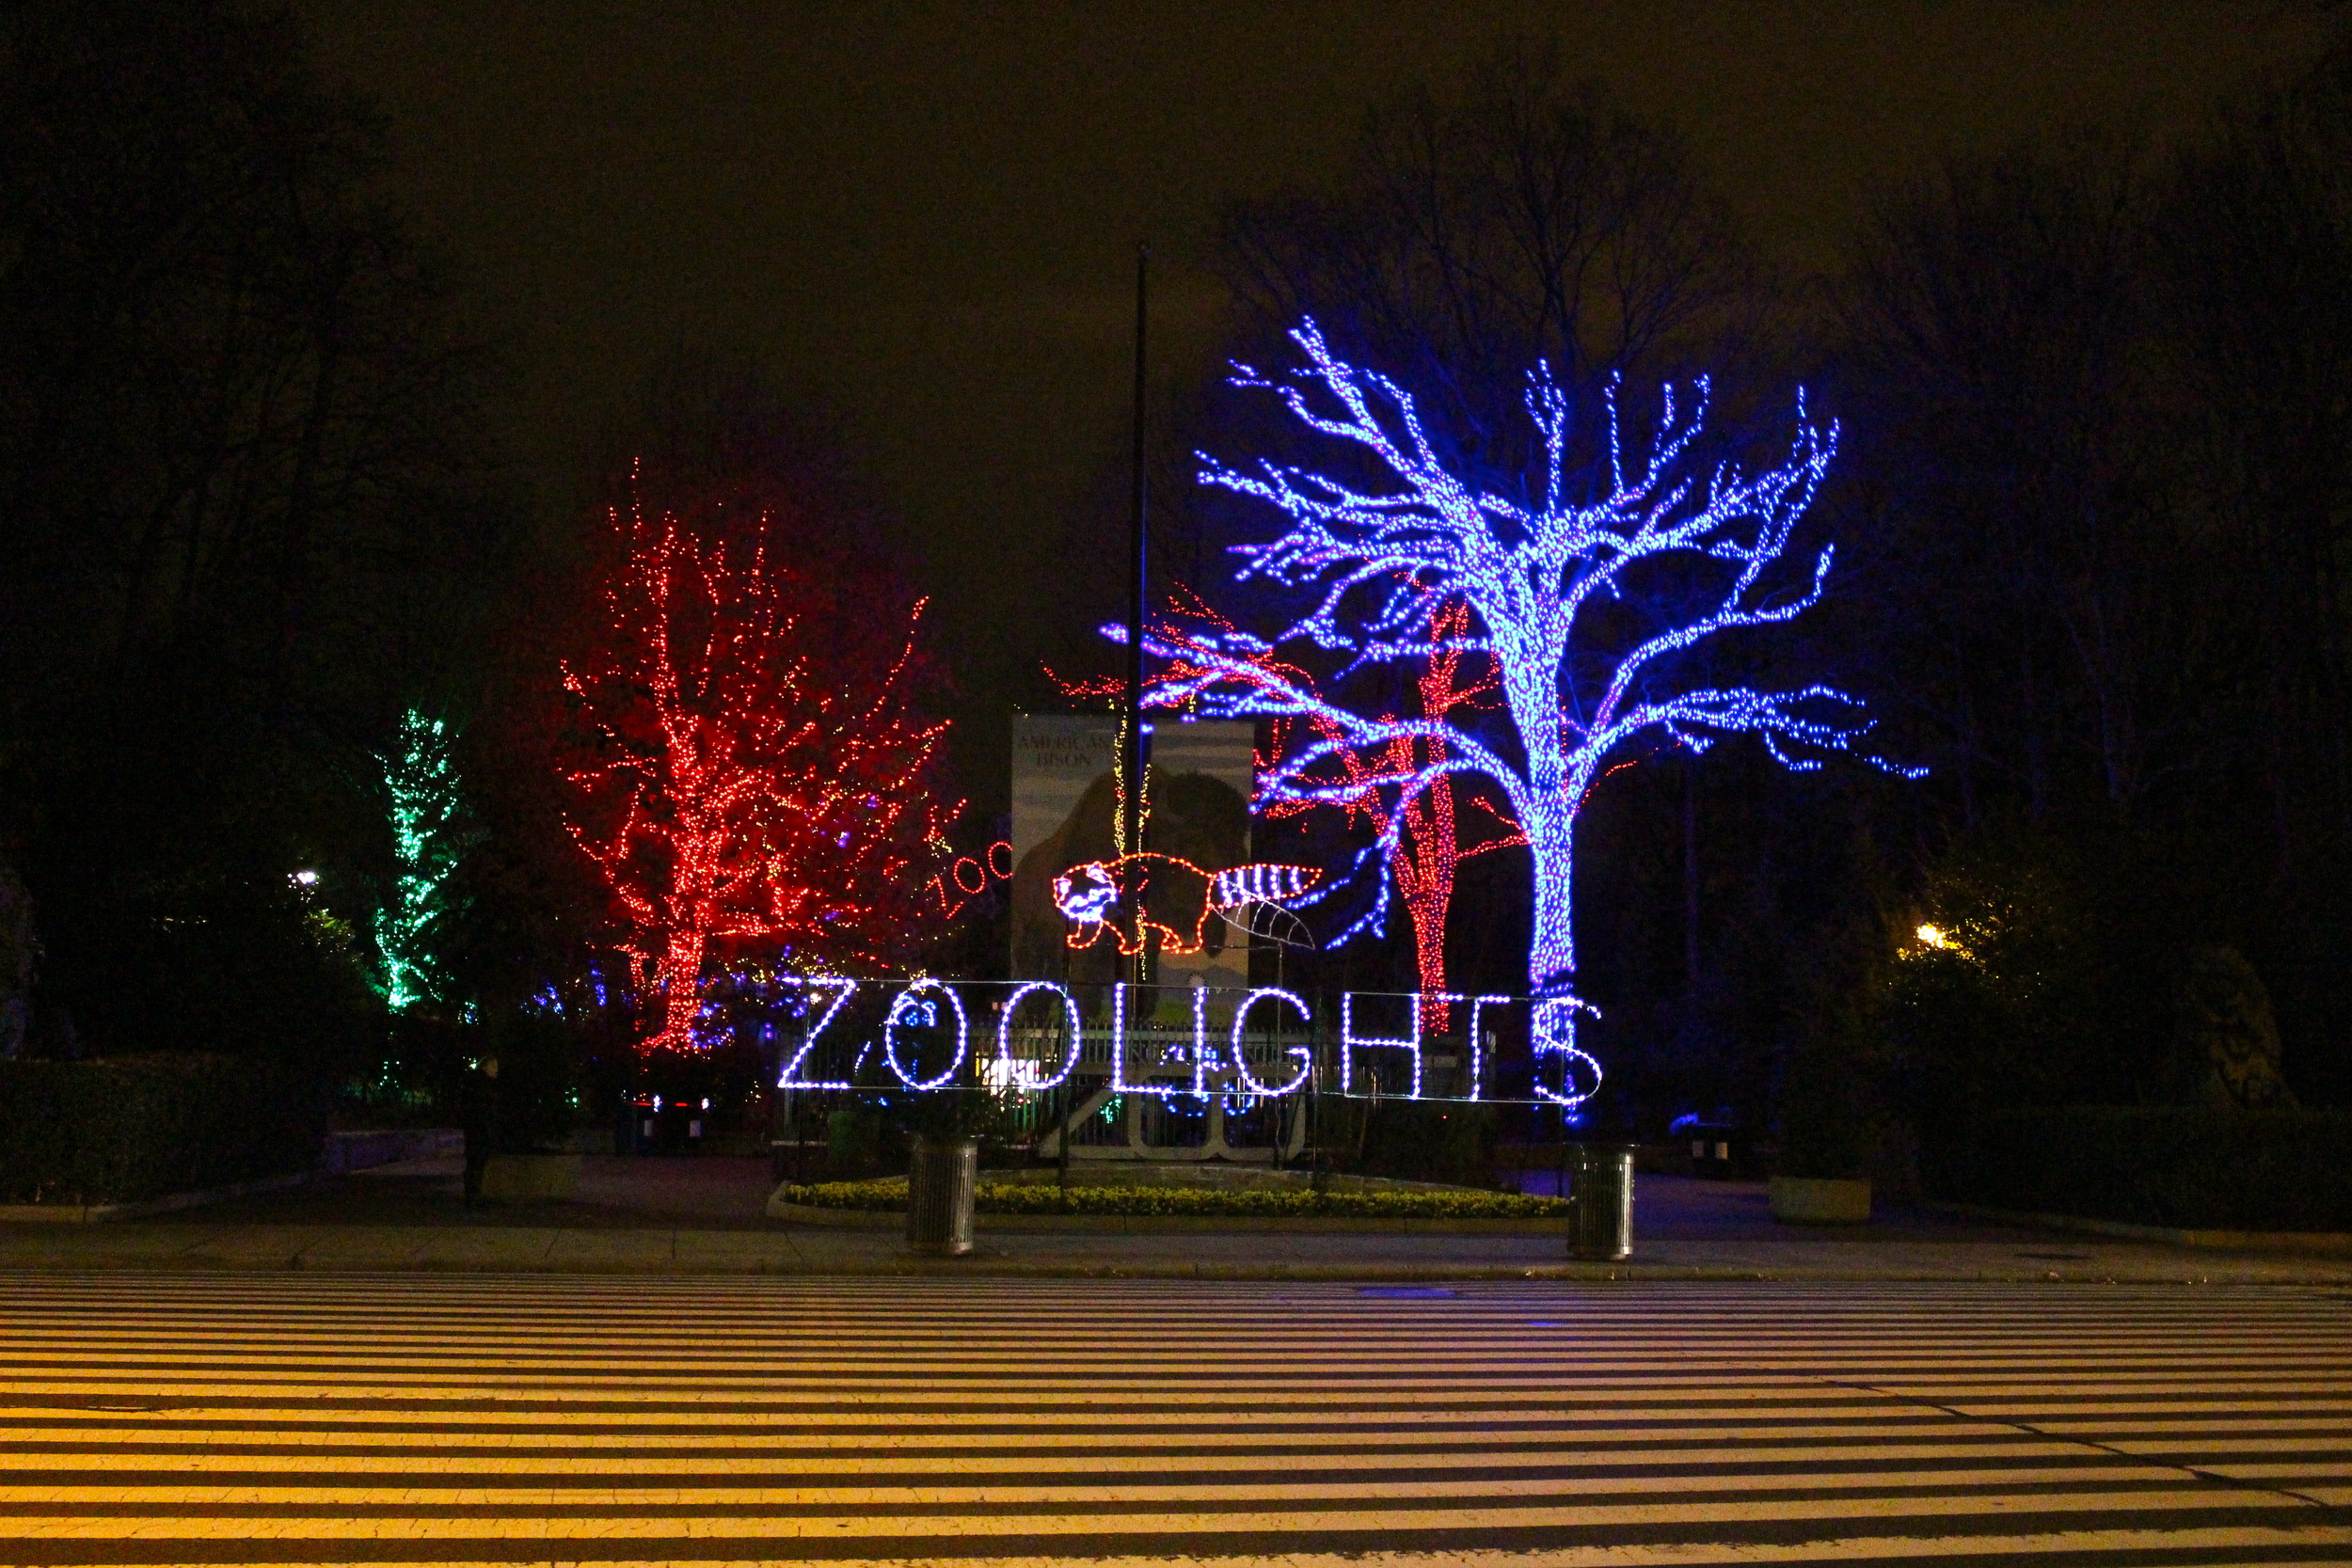 Entrance of Zoo Lights